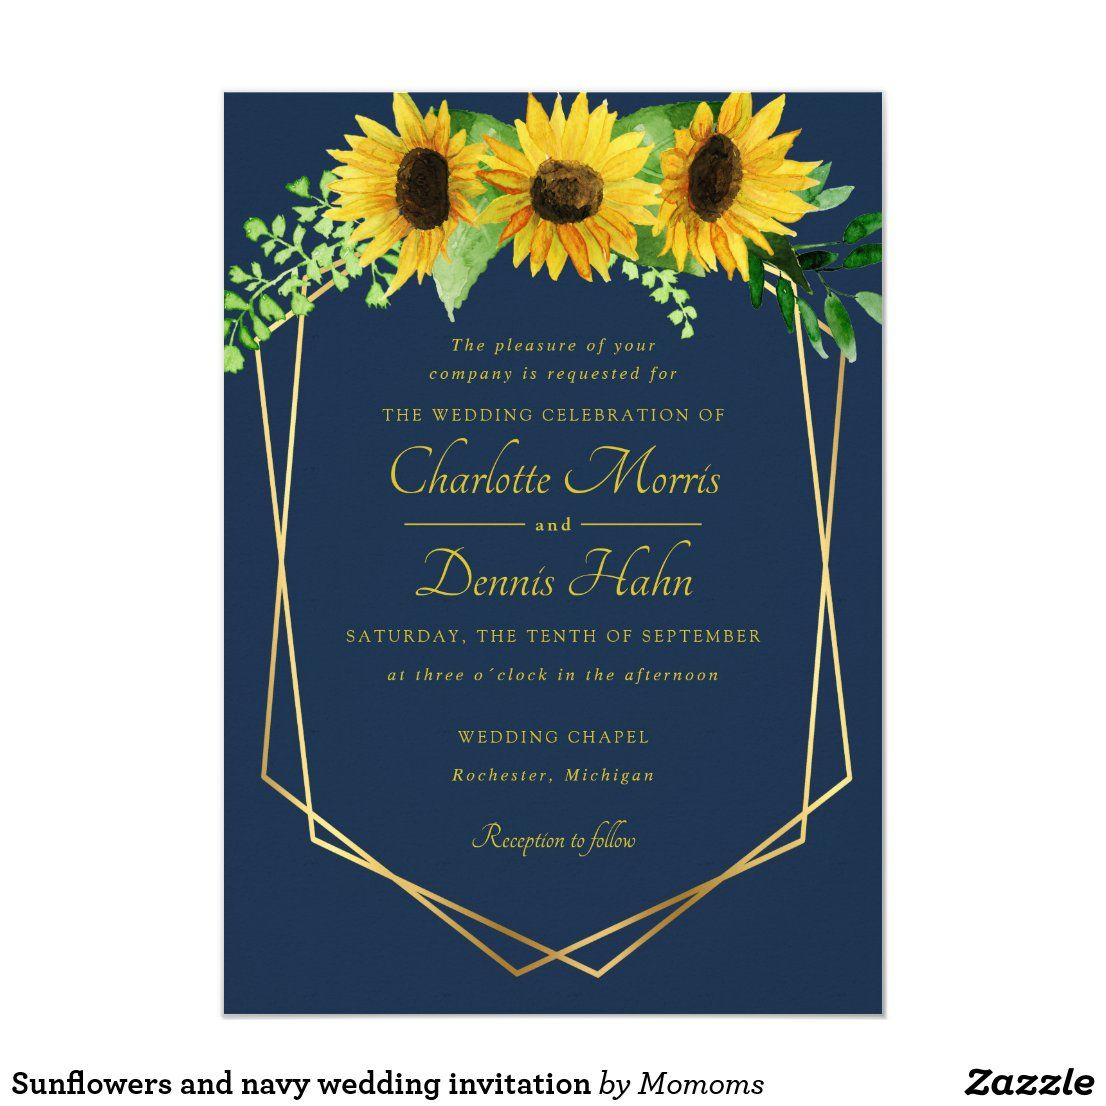 Sunflowers and navy wedding invitation in